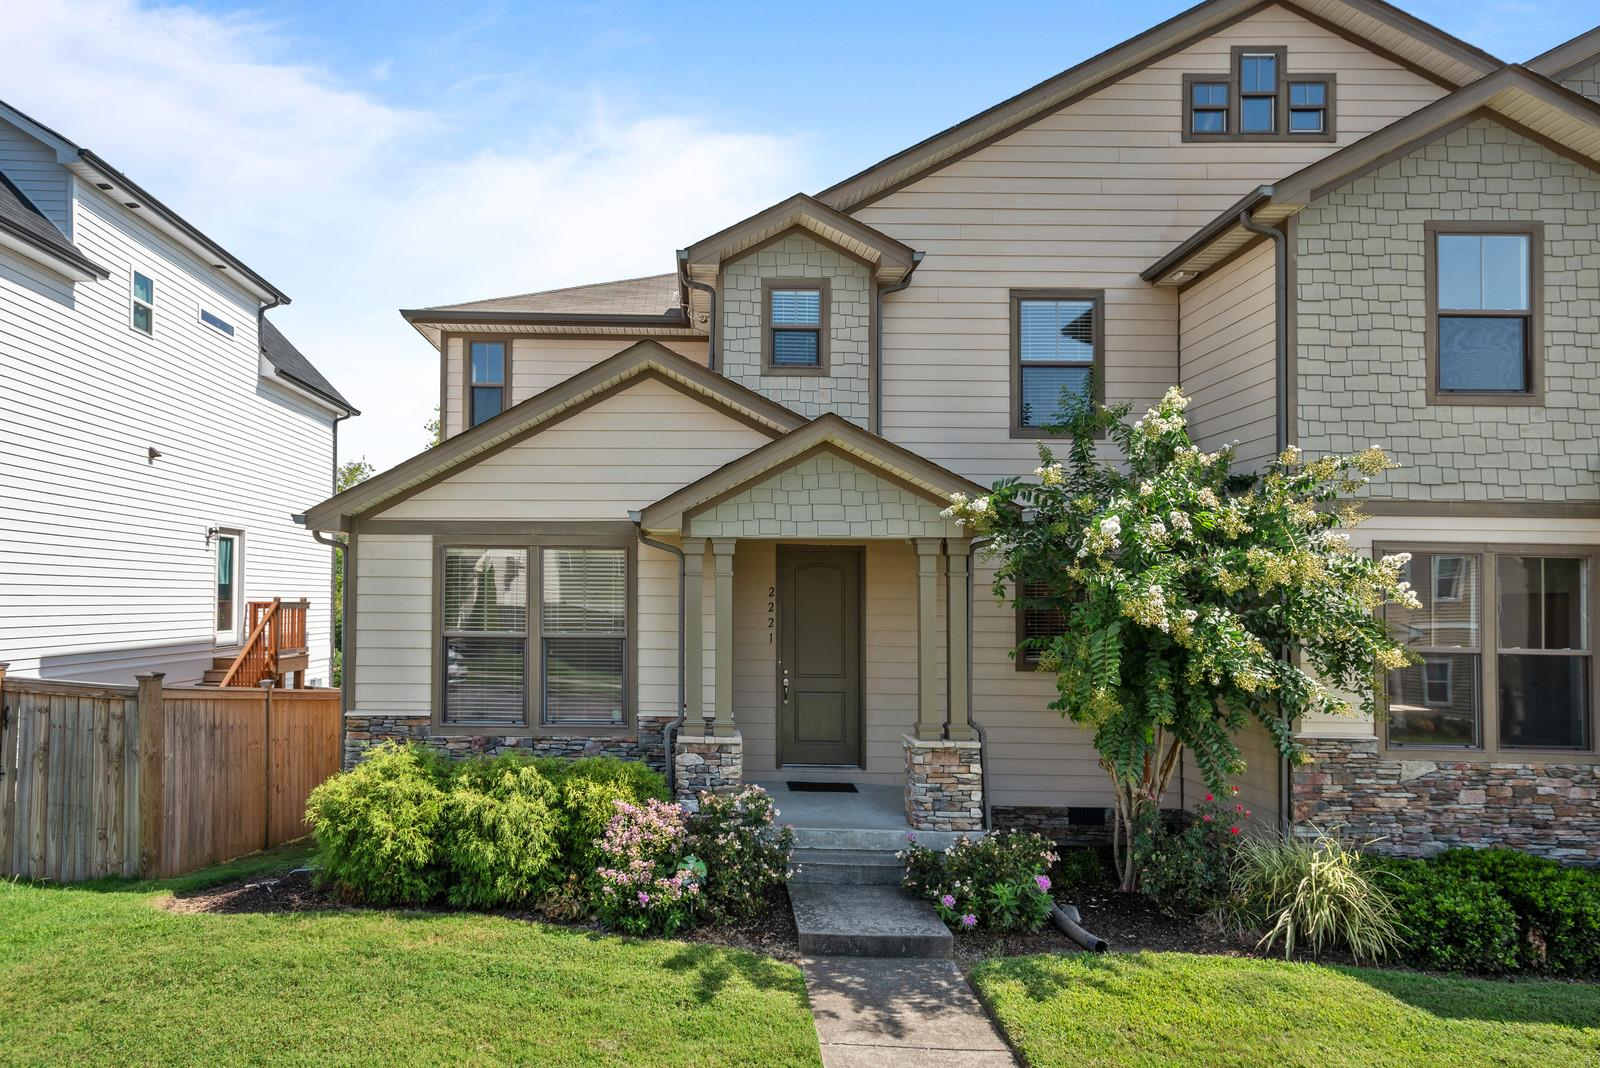 2221 Dale View Dr, Nashville-Antioch, Tennessee